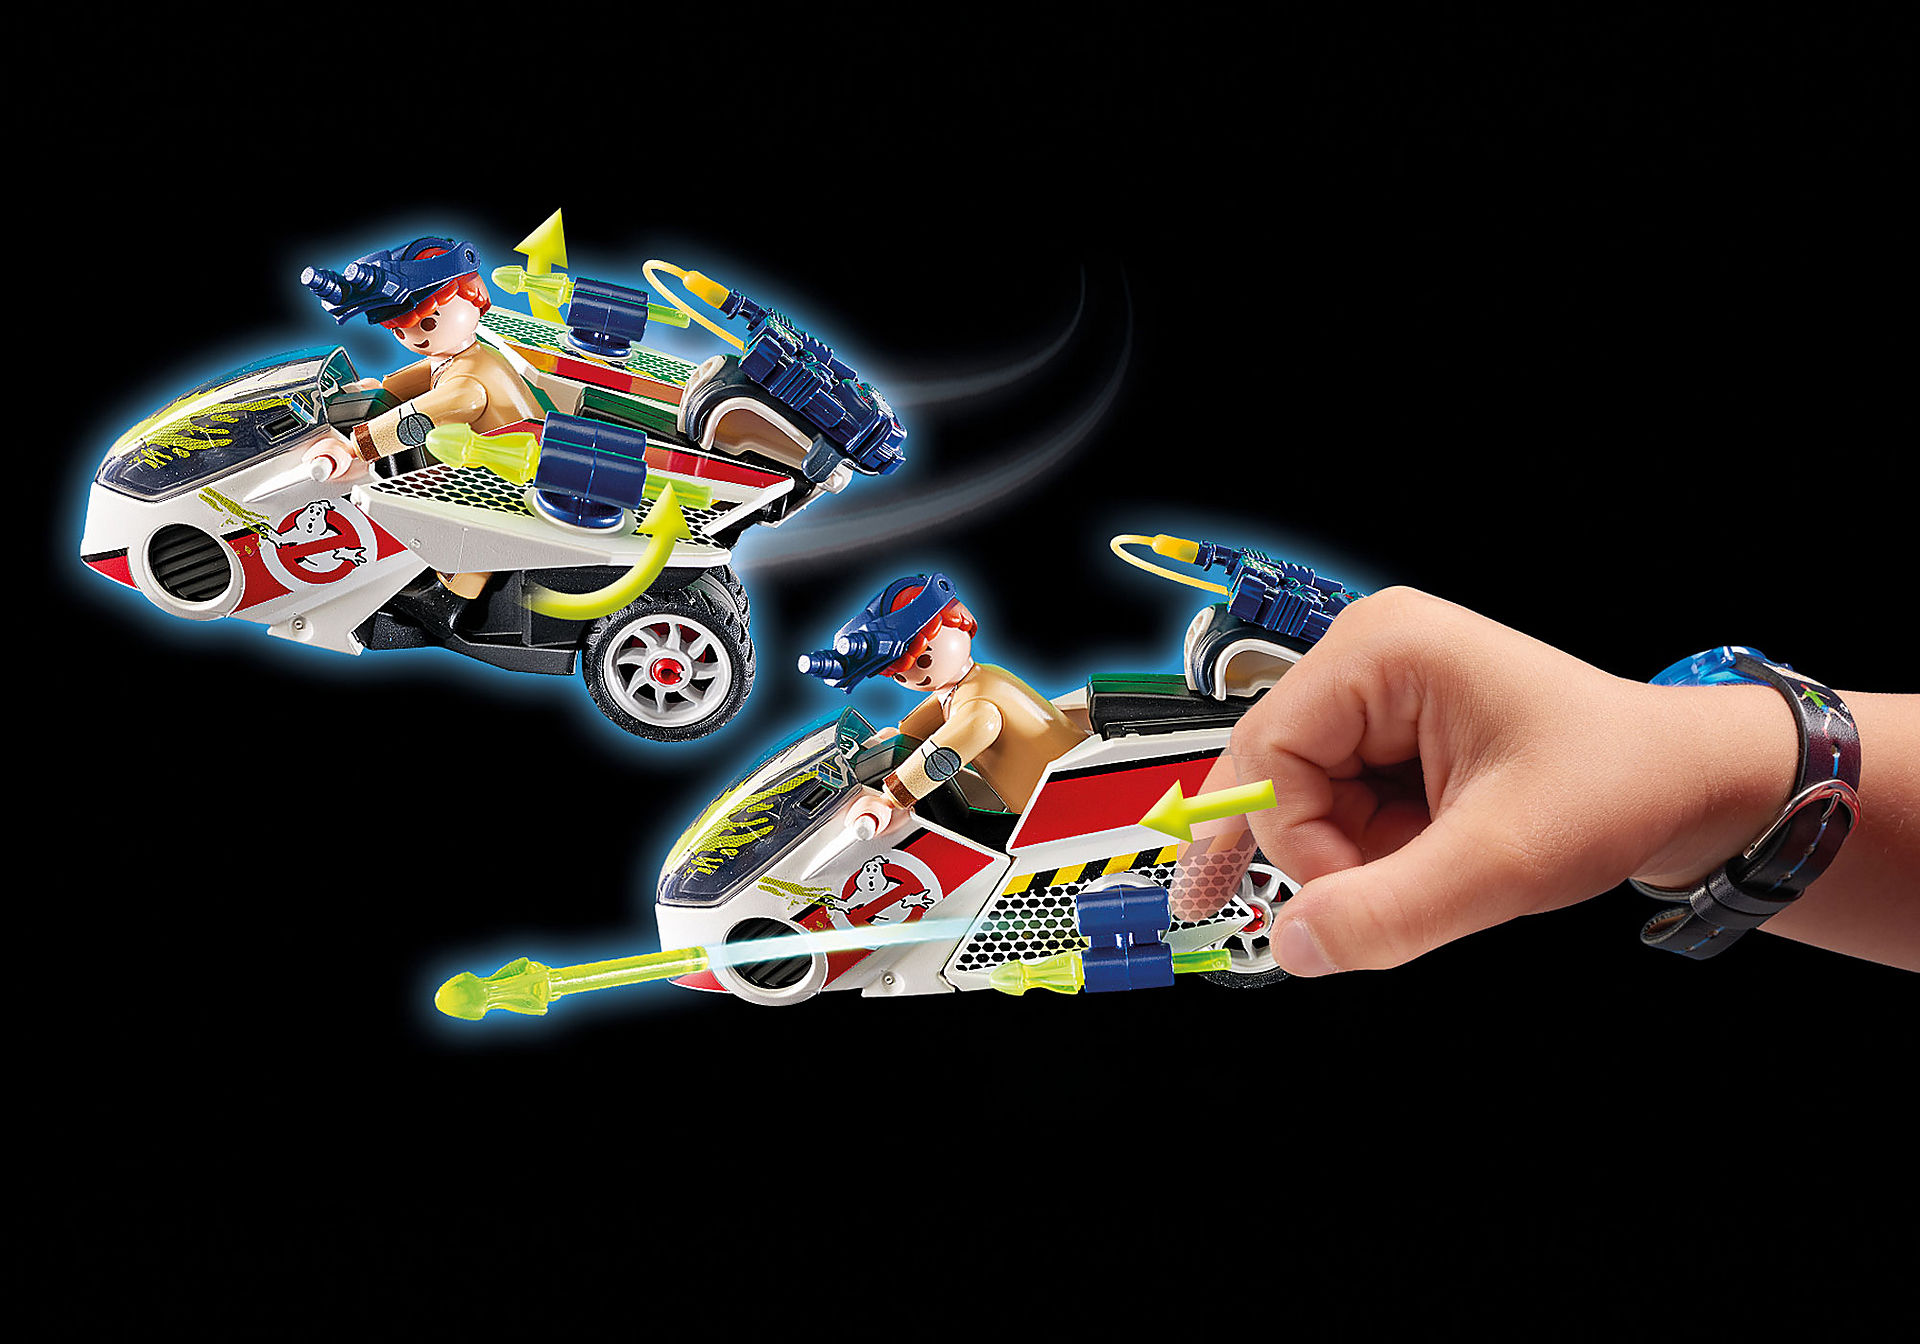 http://media.playmobil.com/i/playmobil/9388_product_extra1/Stanz met luchtmoto